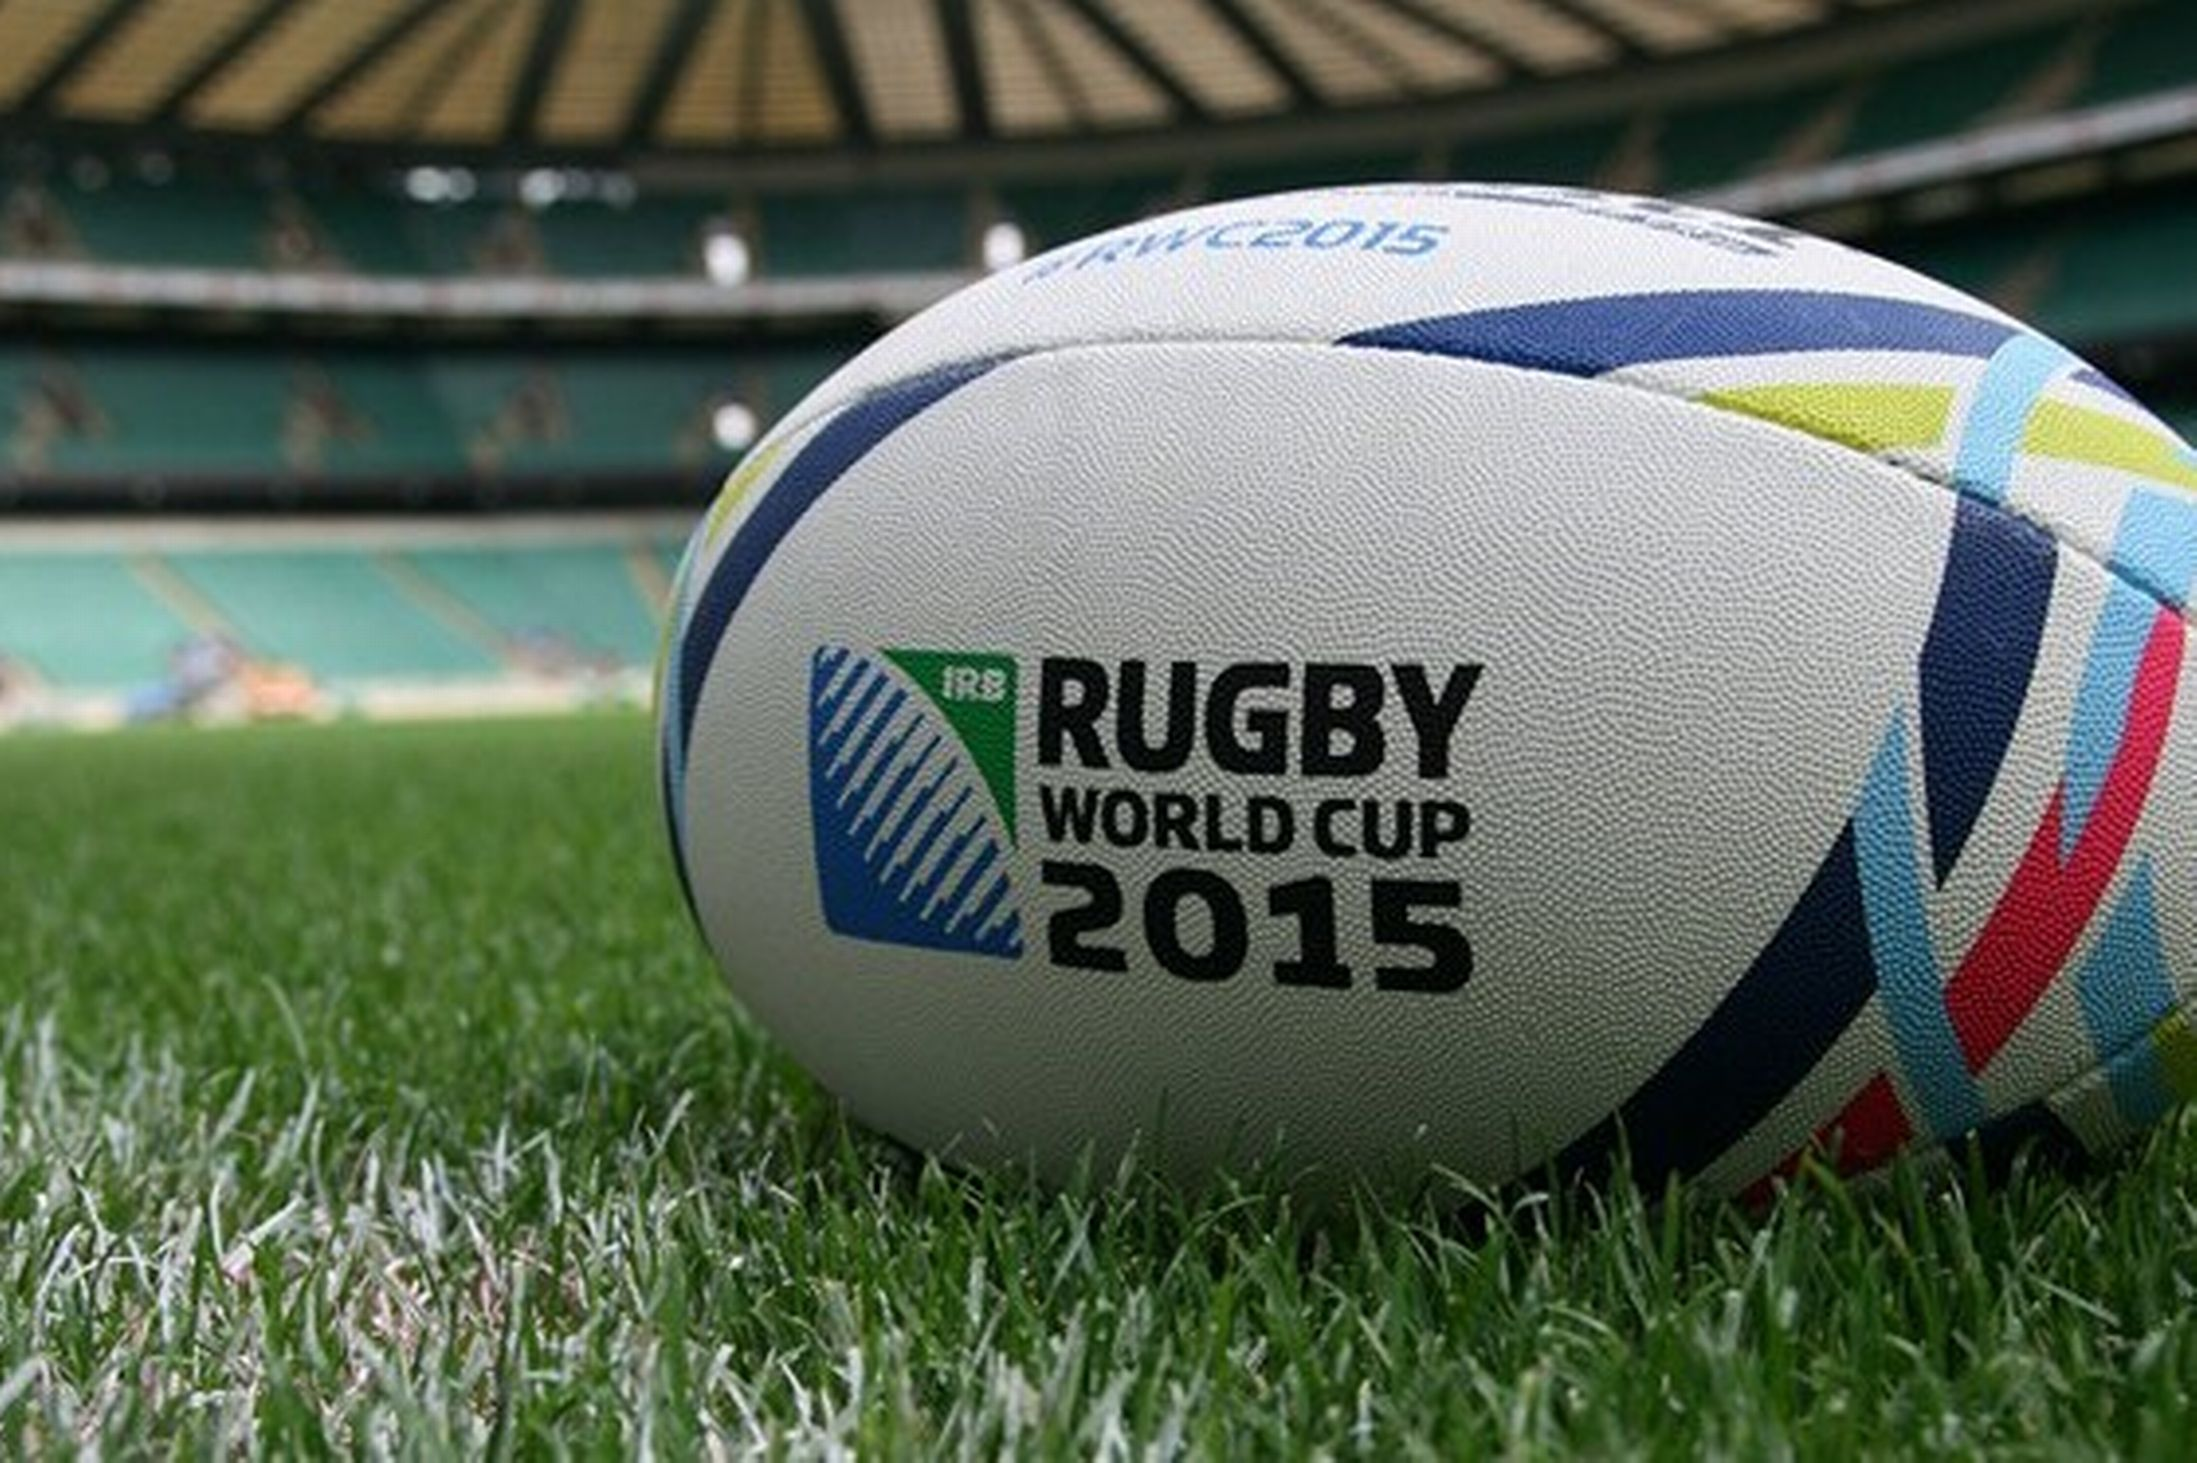 Rugby World Cup 2015 Starting From 19 September